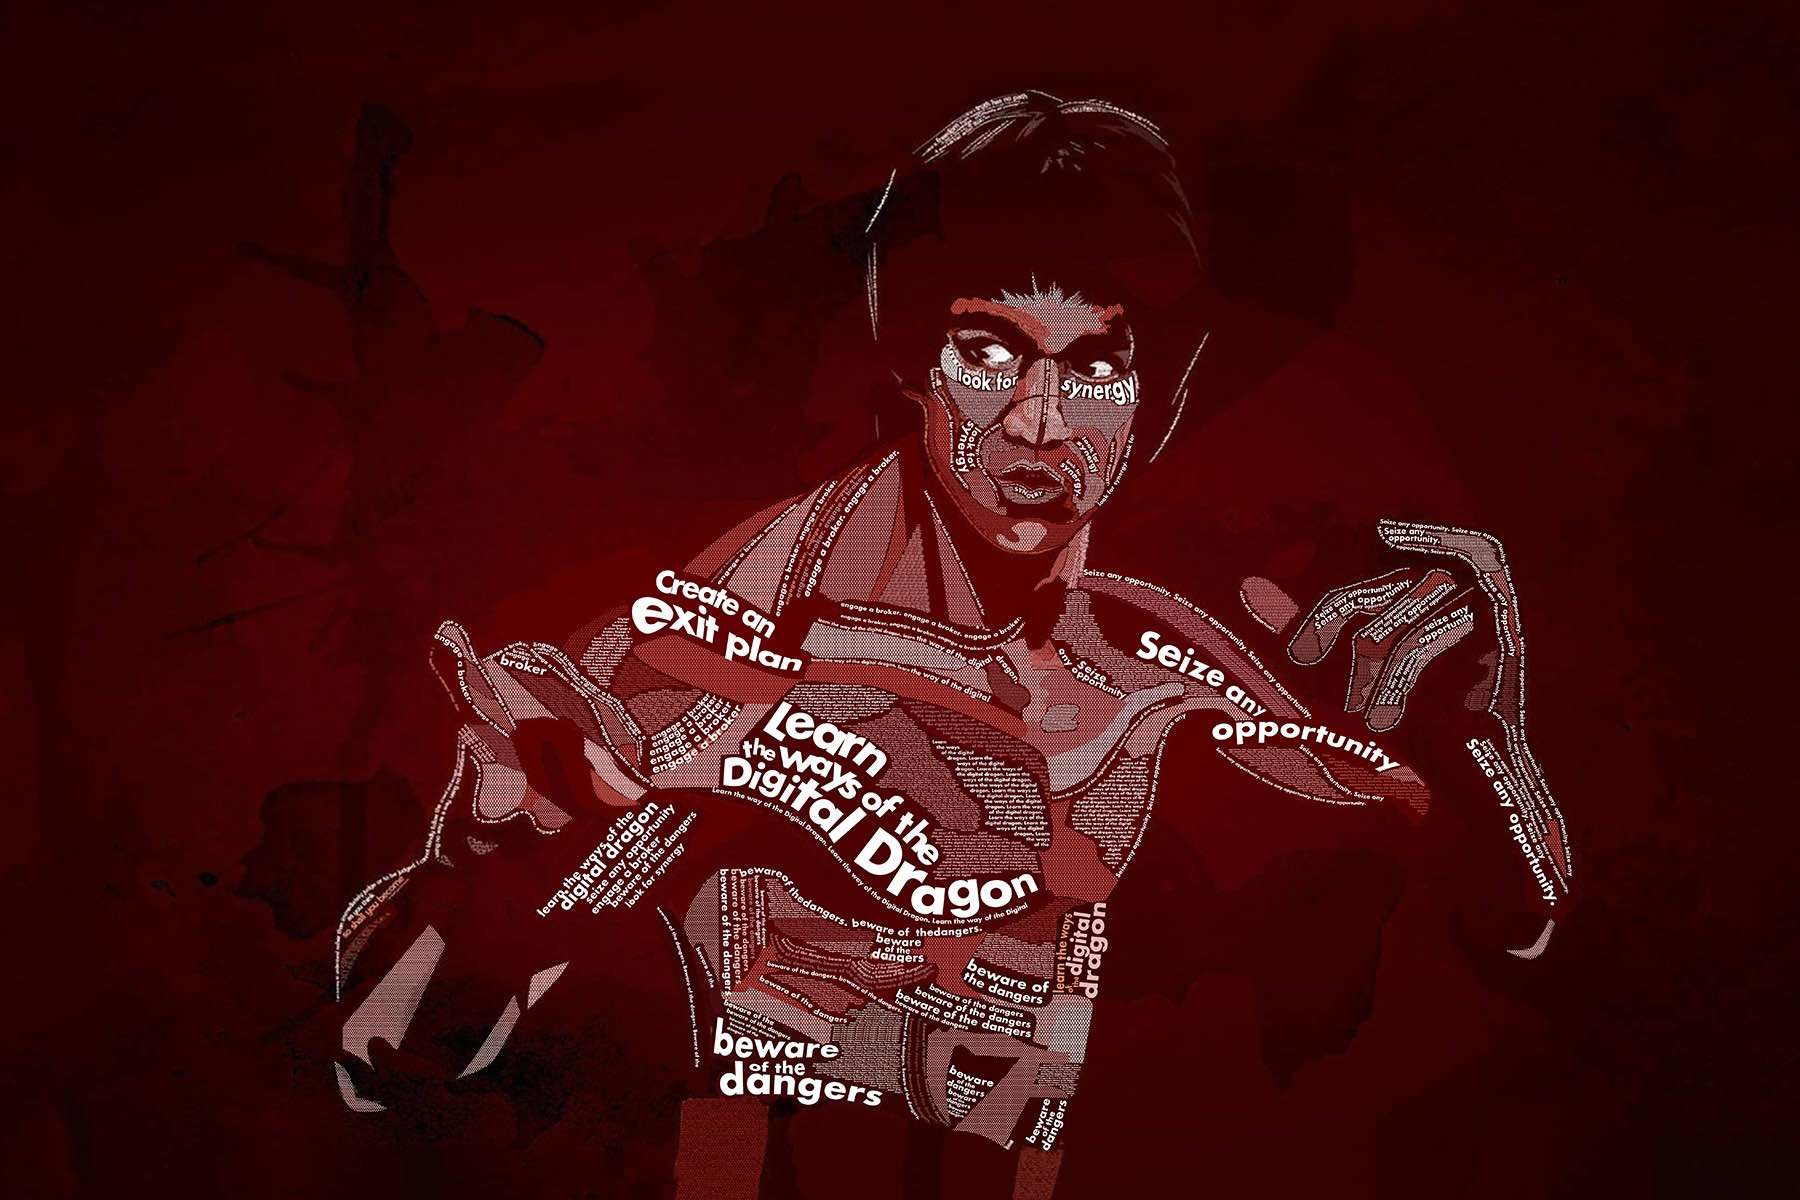 Bruce lee digital dragon